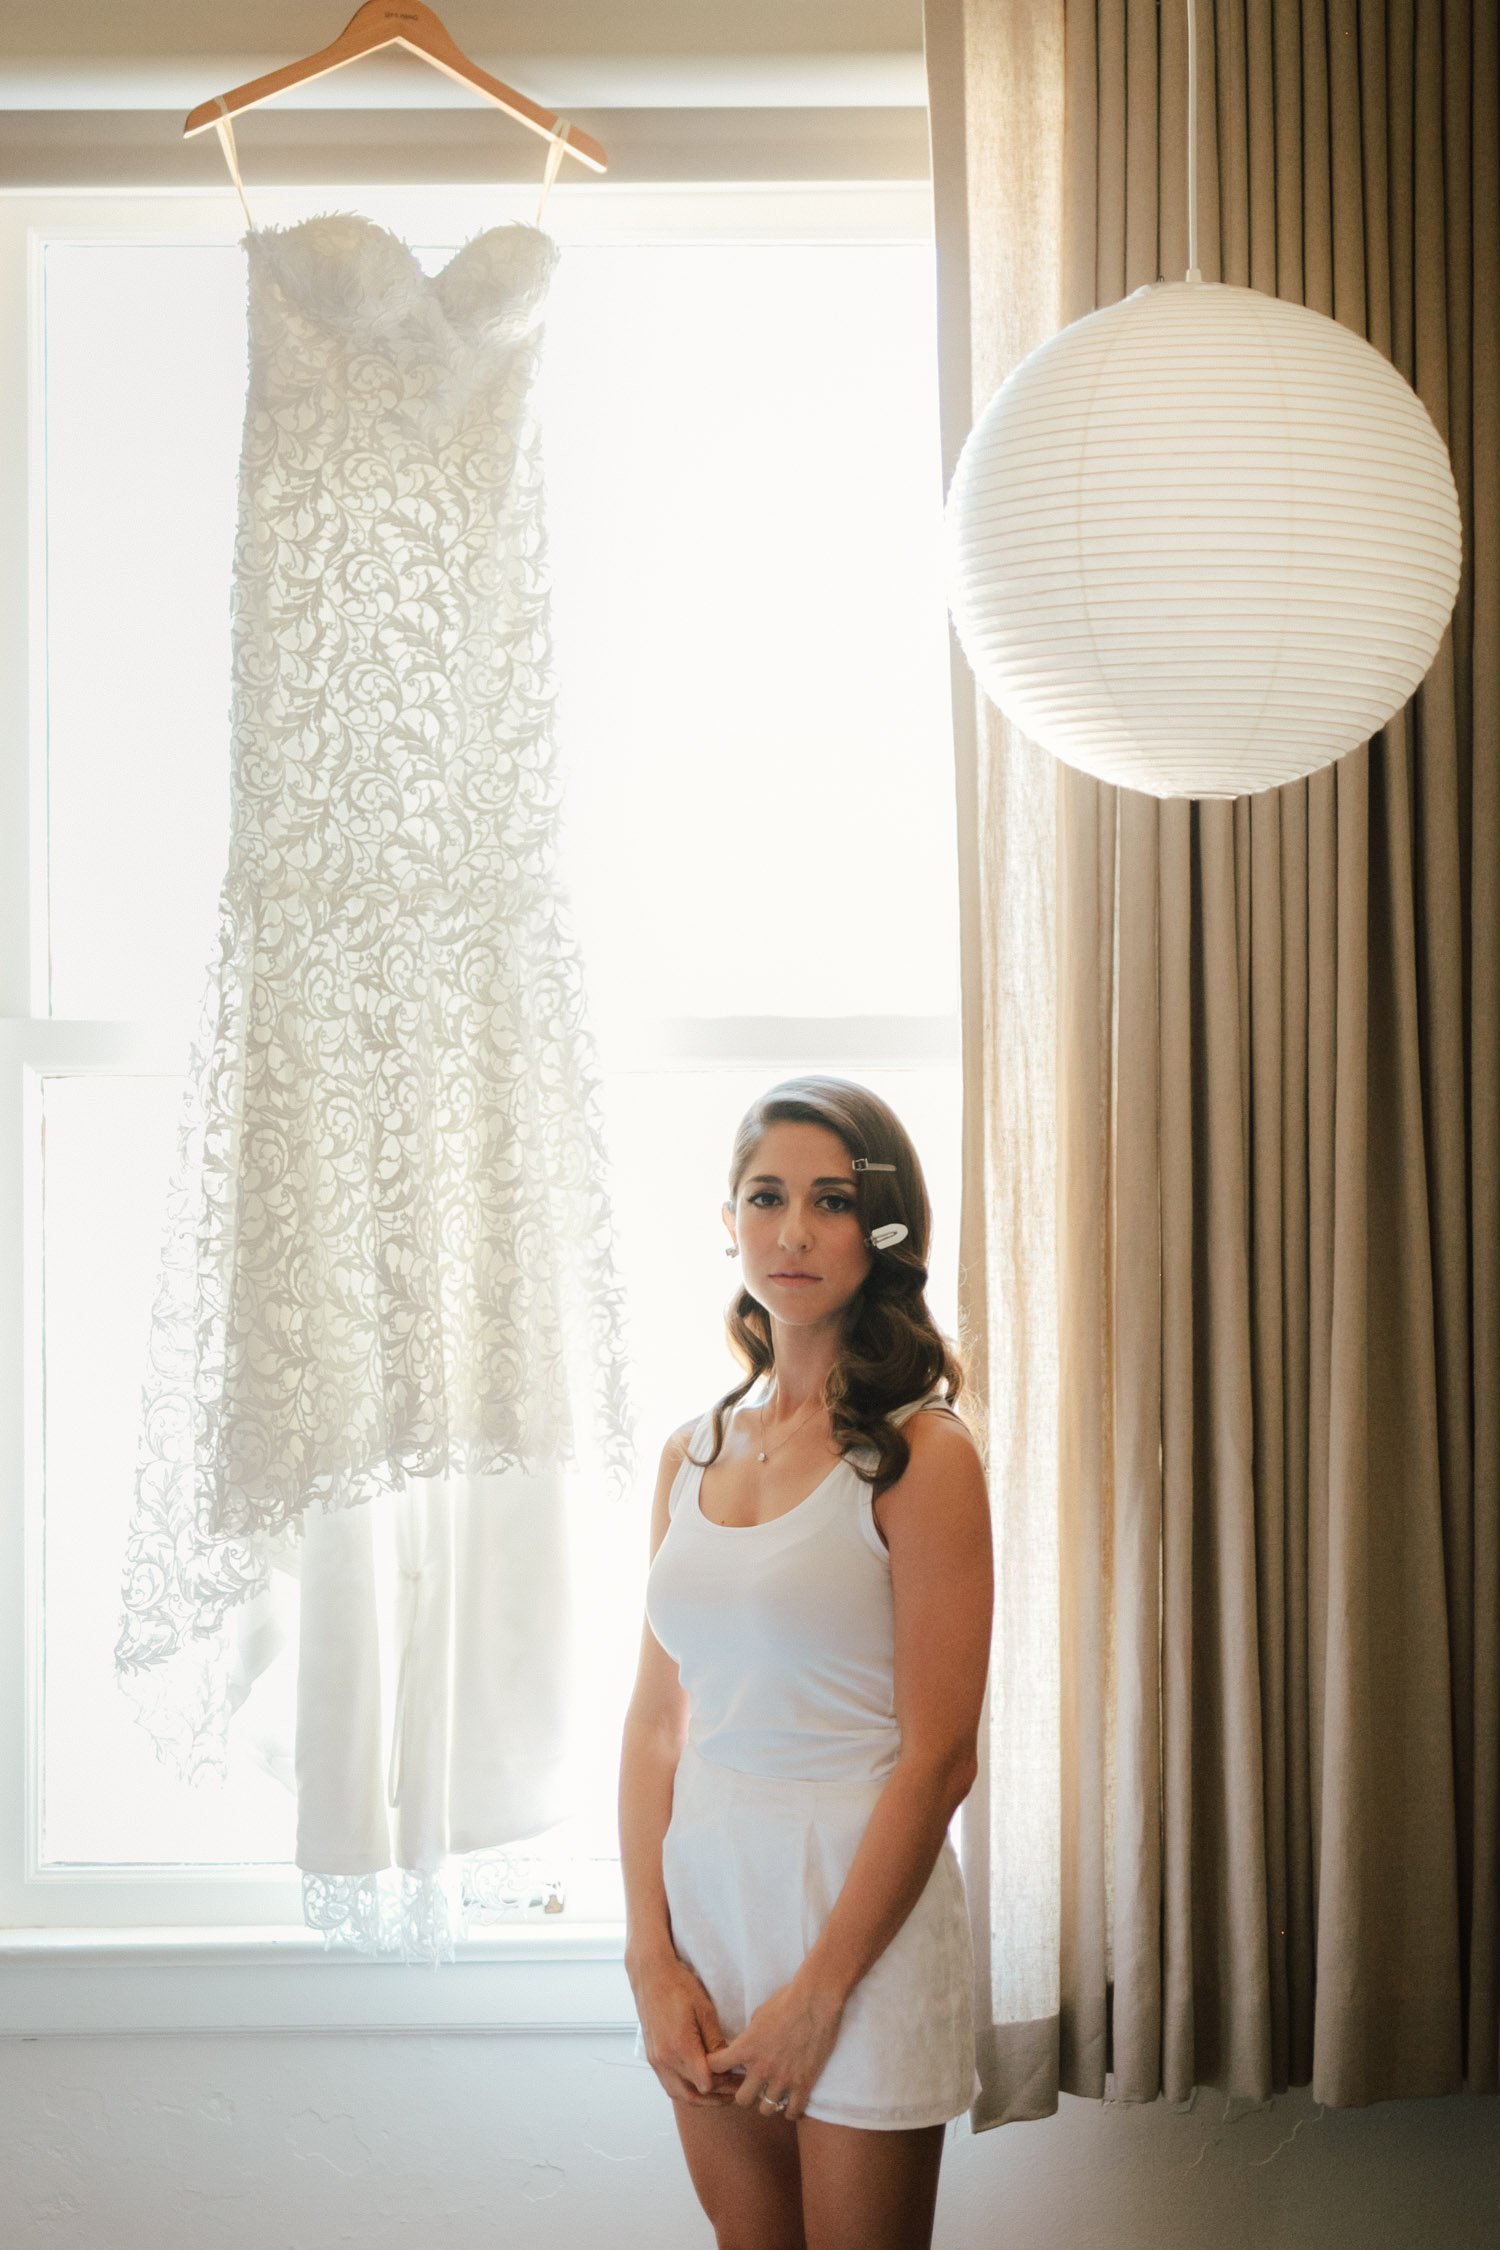 Los Angeles Wedding Photographer, Ace Hotel, Millwick Wedding - The Gathering Season x weareleoandkat 005.JPG